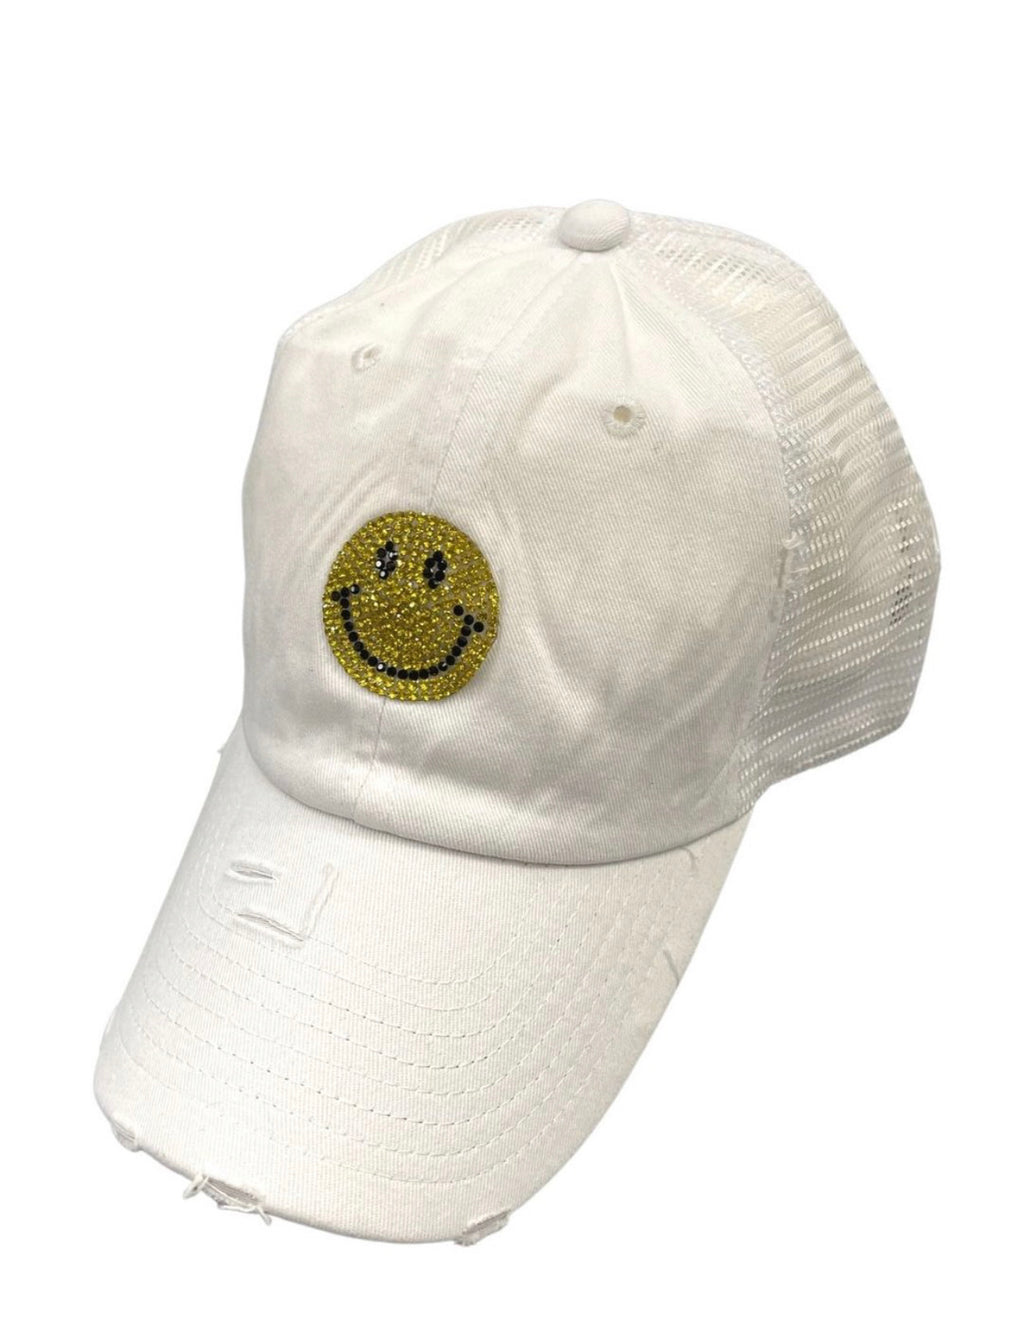 Smiley Patch Hat